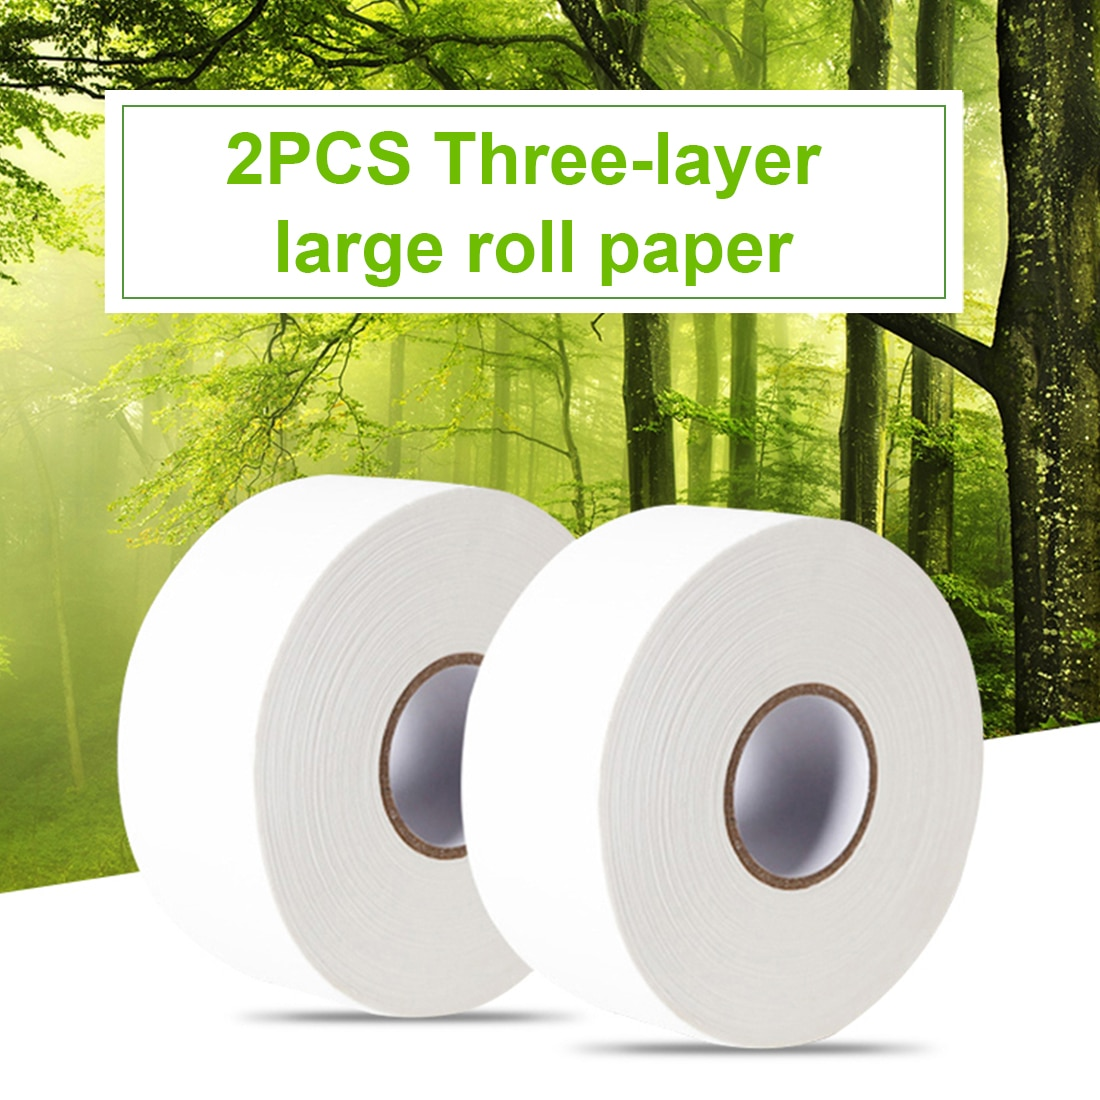 2pcs/bag 900+sheets 580g/roll Jumbo Roll White Toilet Tissue Hollow Replacement Roll Paper Cleaning Soft Toilet Paper